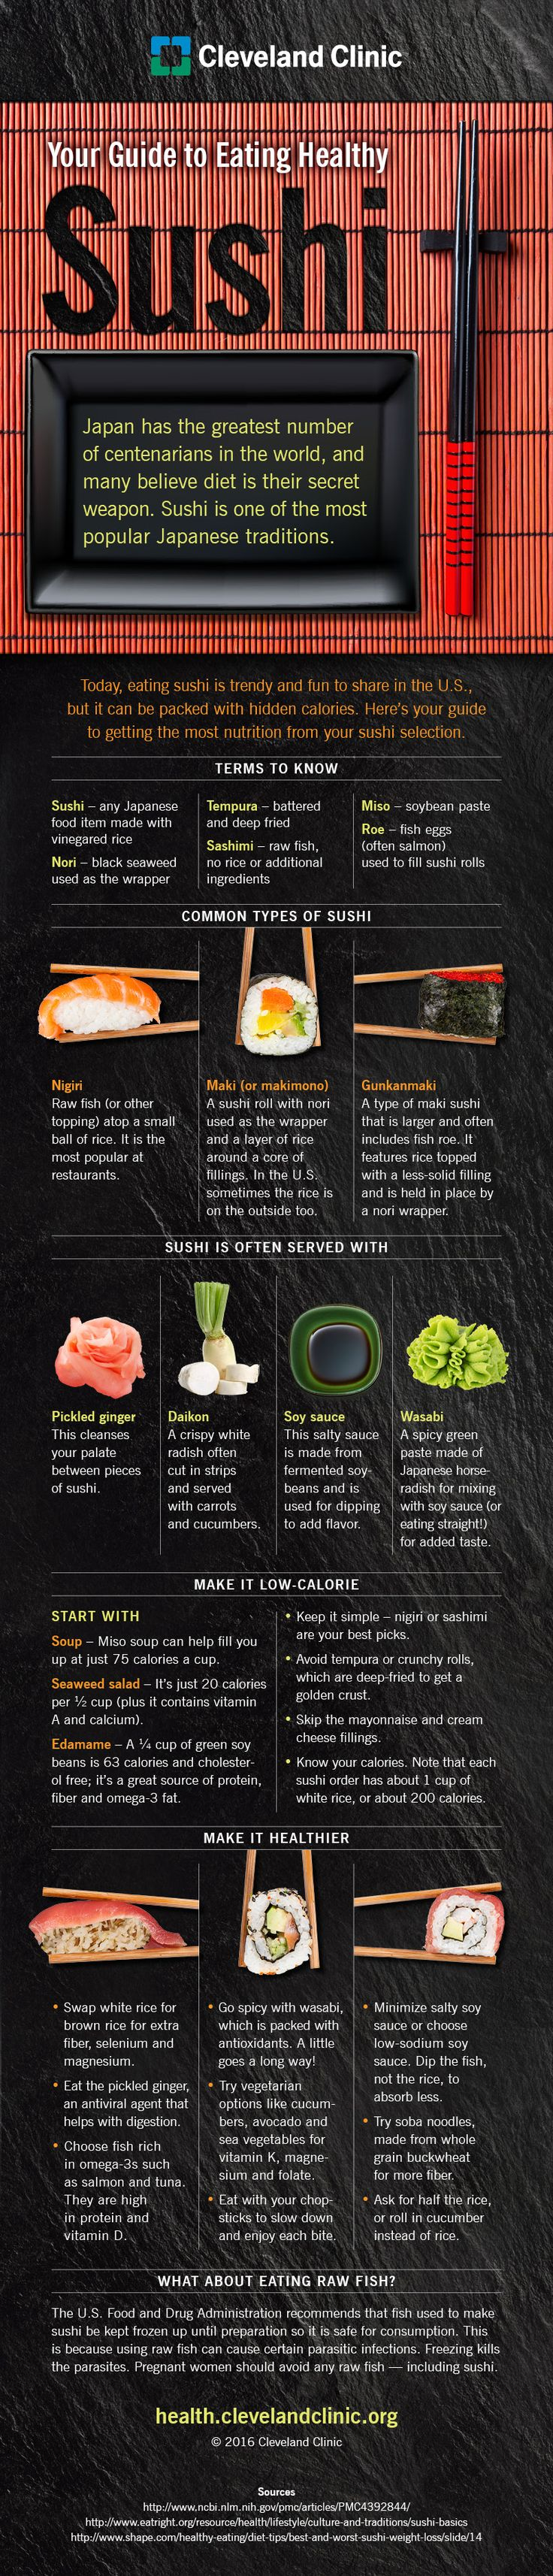 Eating sushi is trendy, but it can be packed with hidden calories. Here's your guide to getting the most nutrition selection and eating healthy sushi.